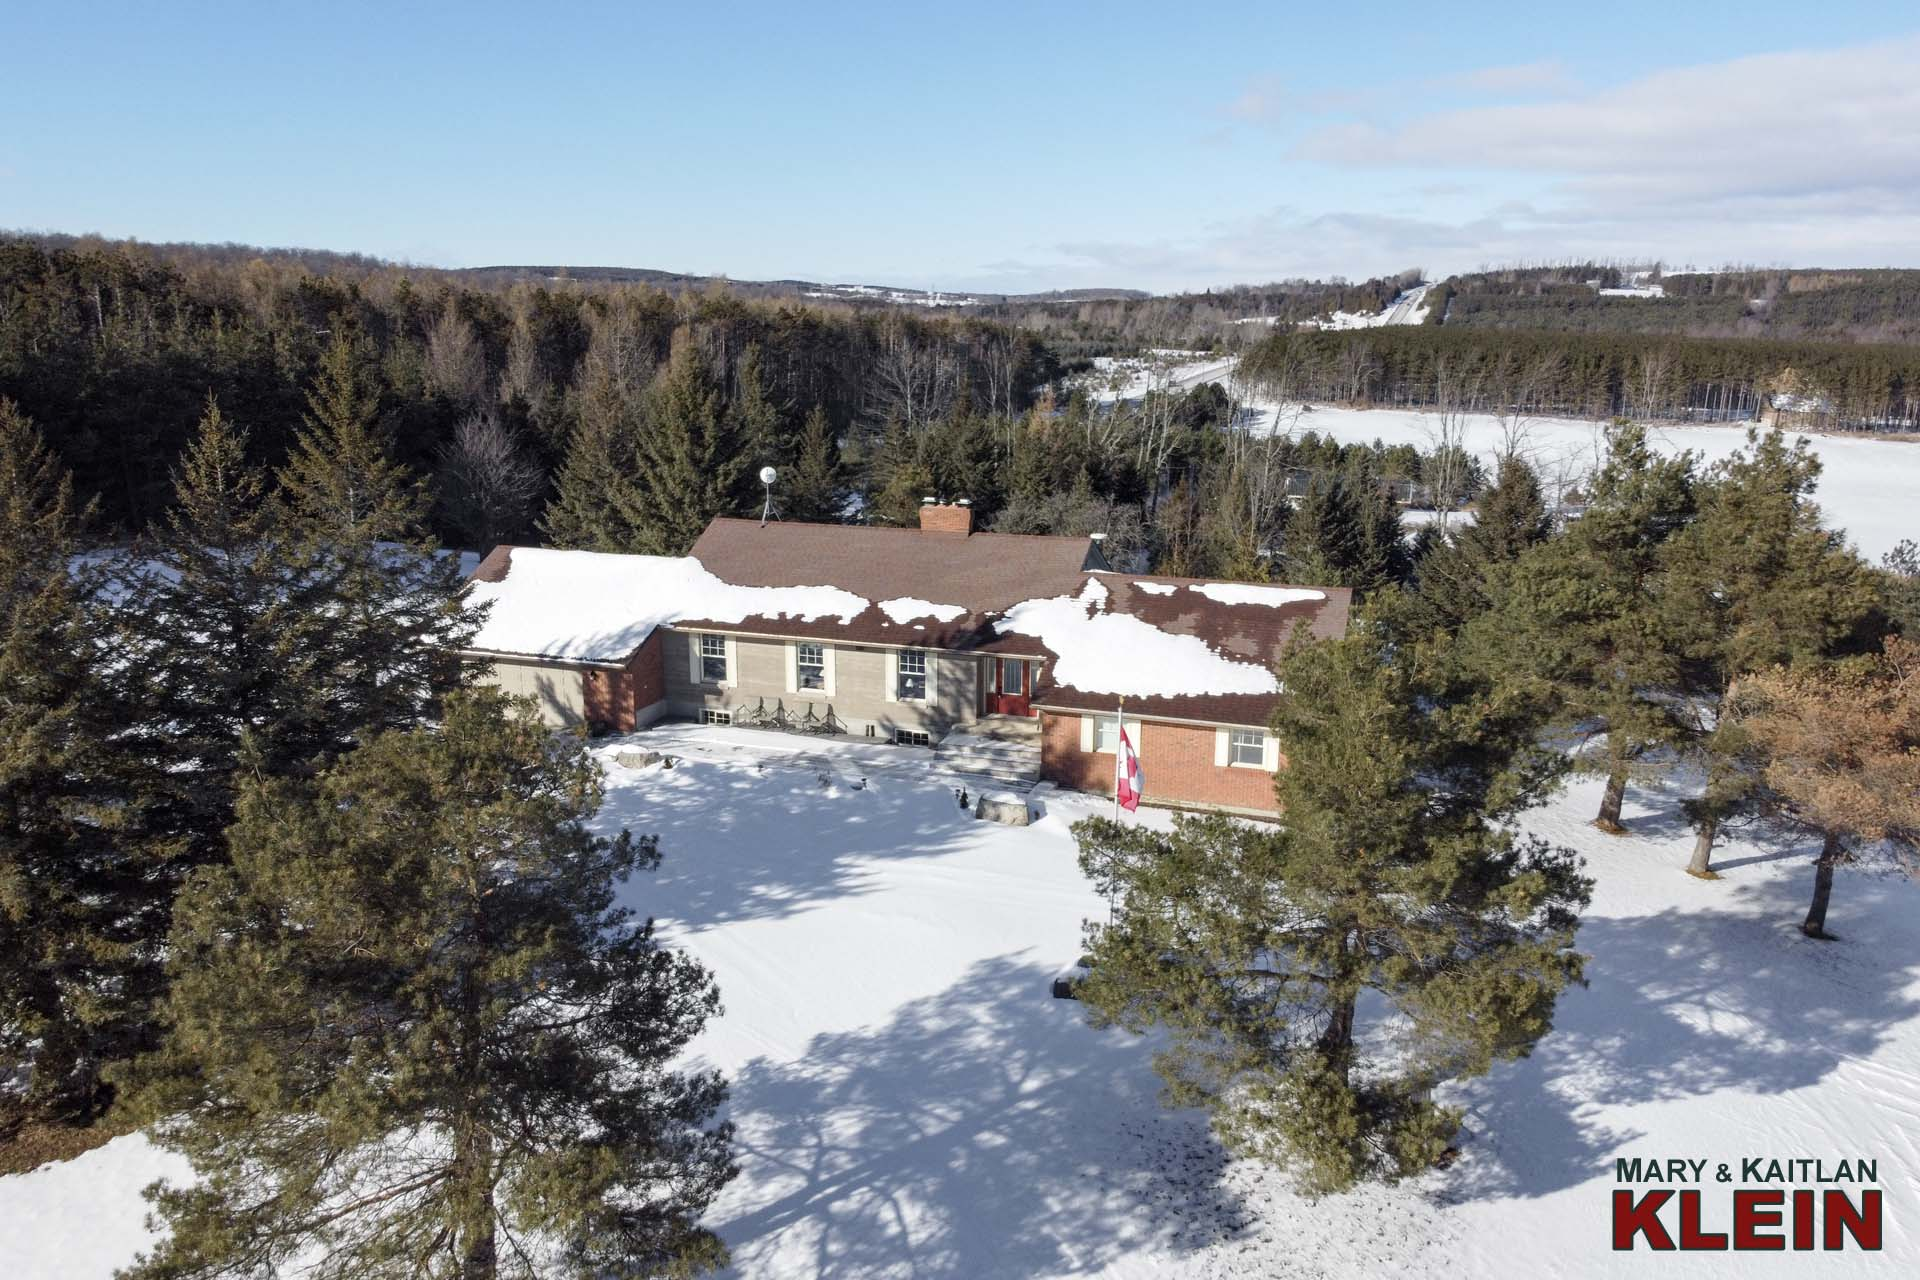 3 Bedroom Bungalow for sale in Mono, ON, KLEIN